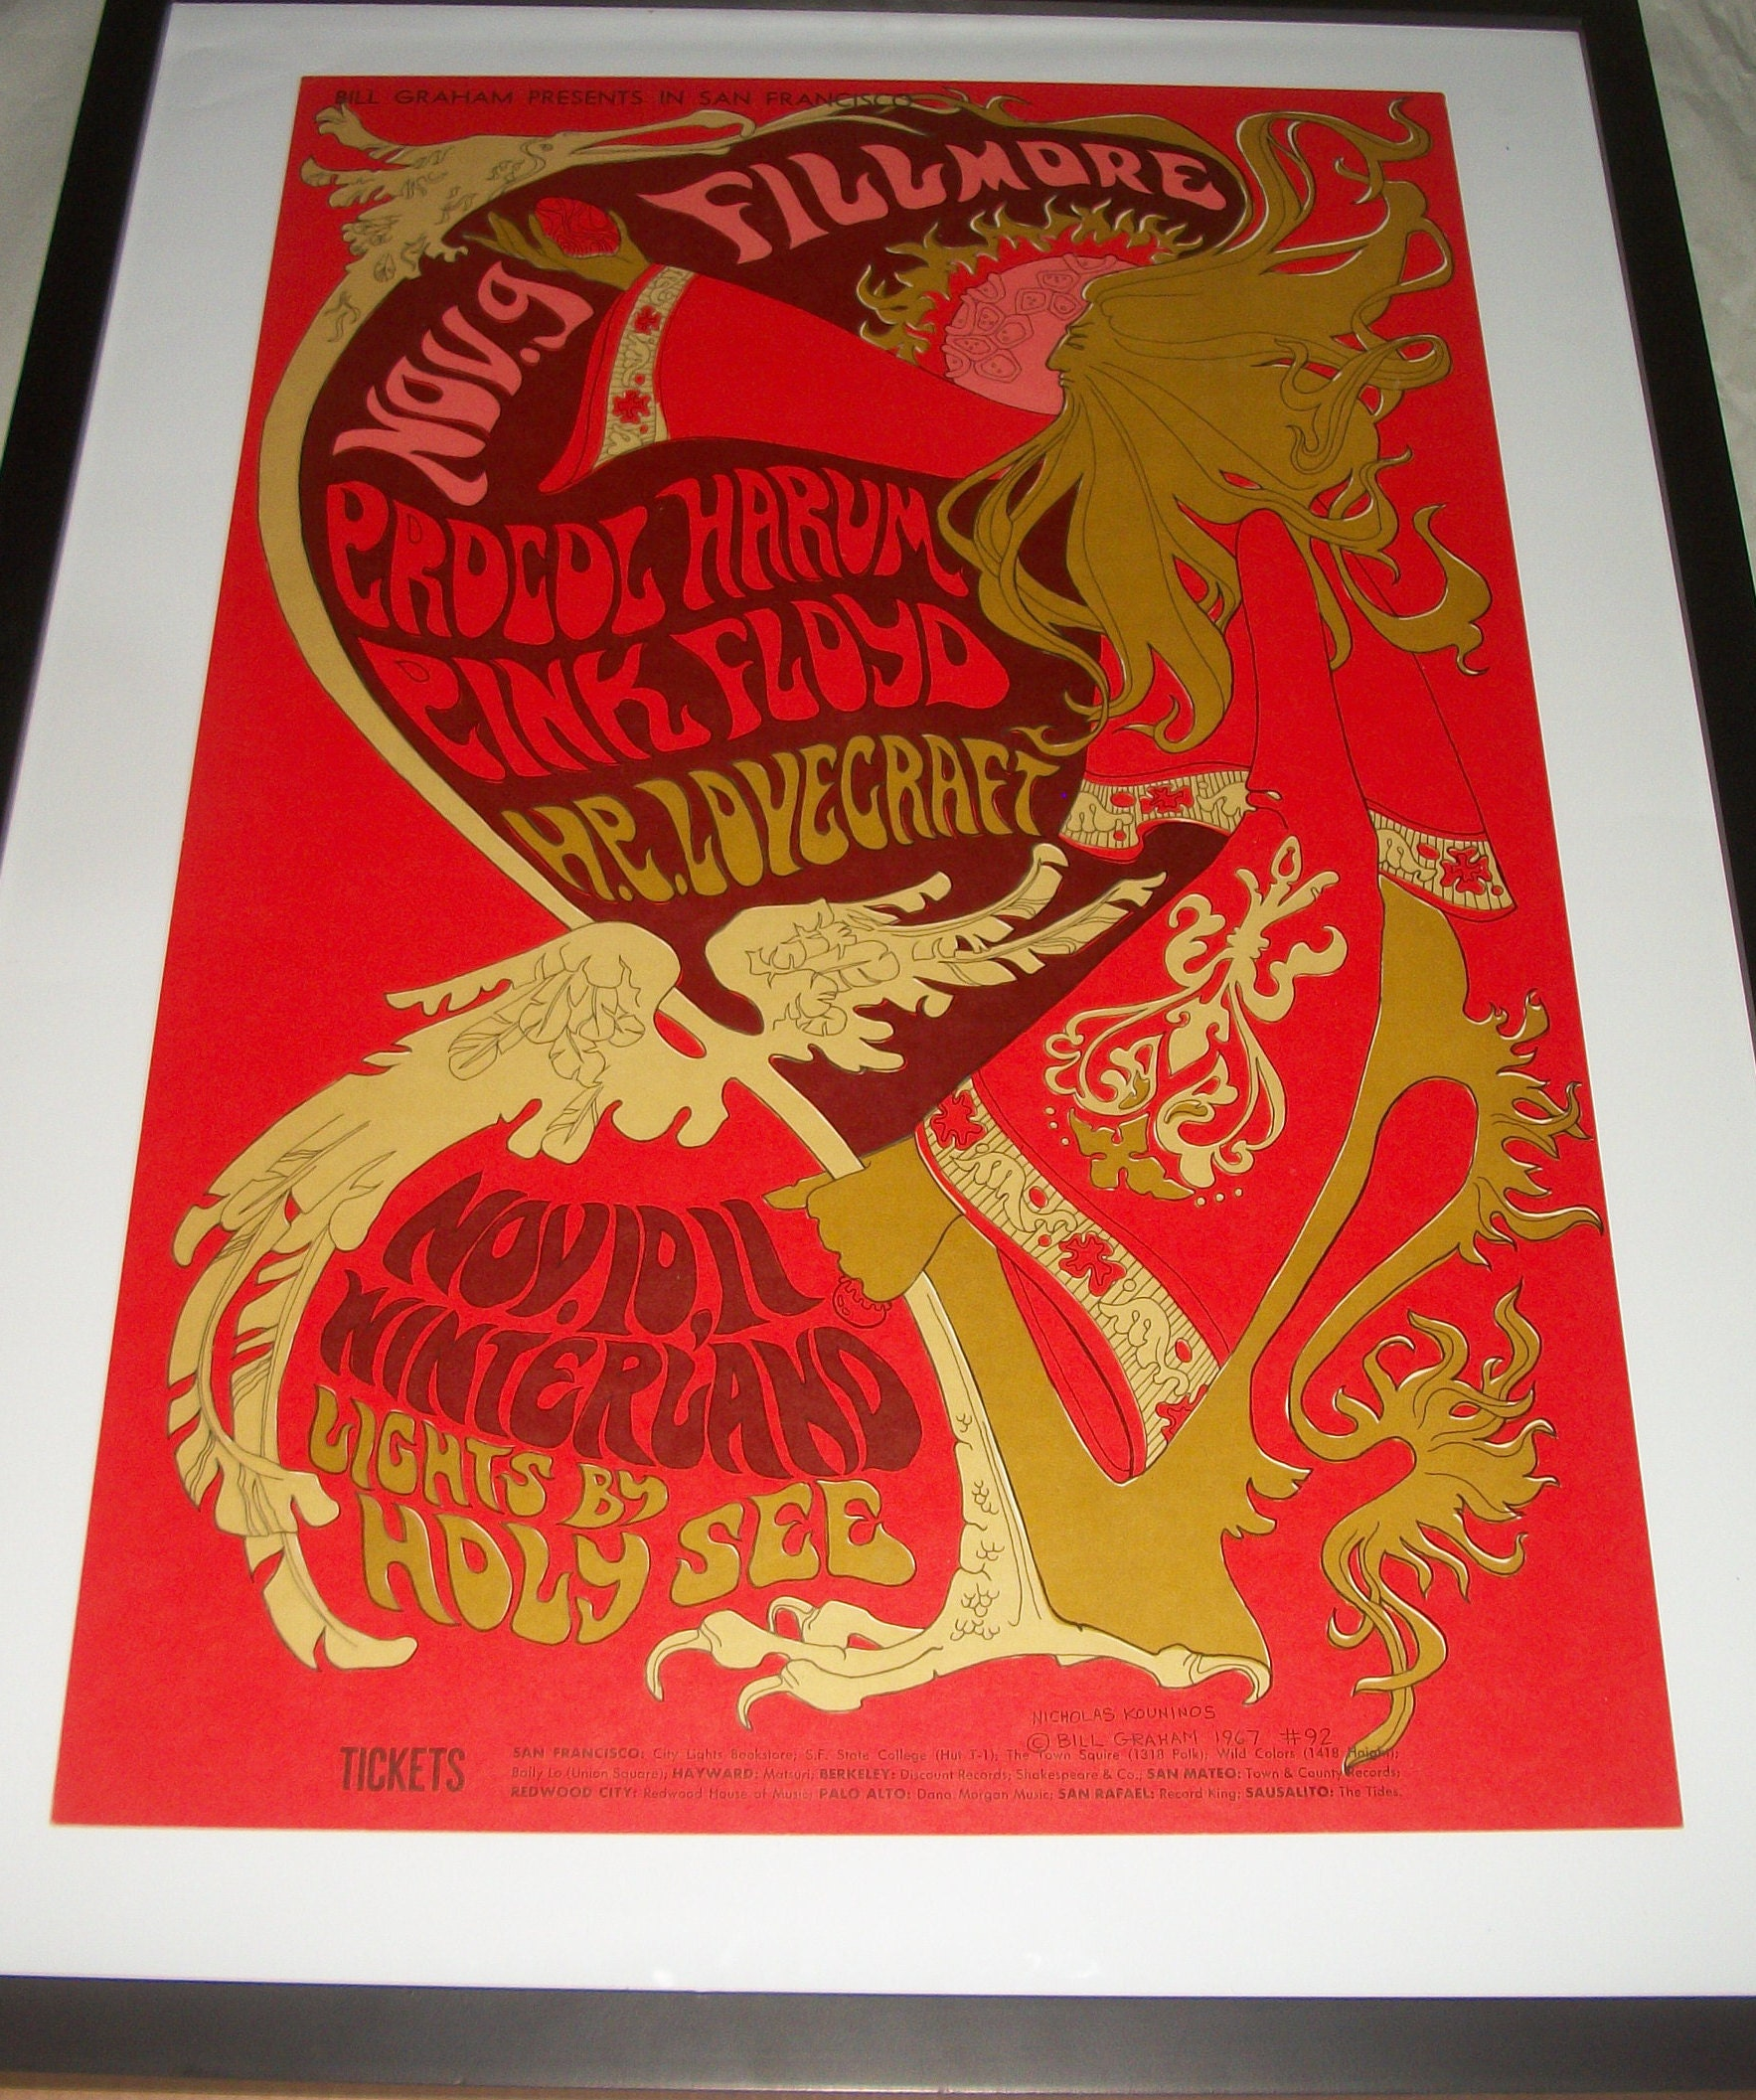 Music artwork Art Concert posters t